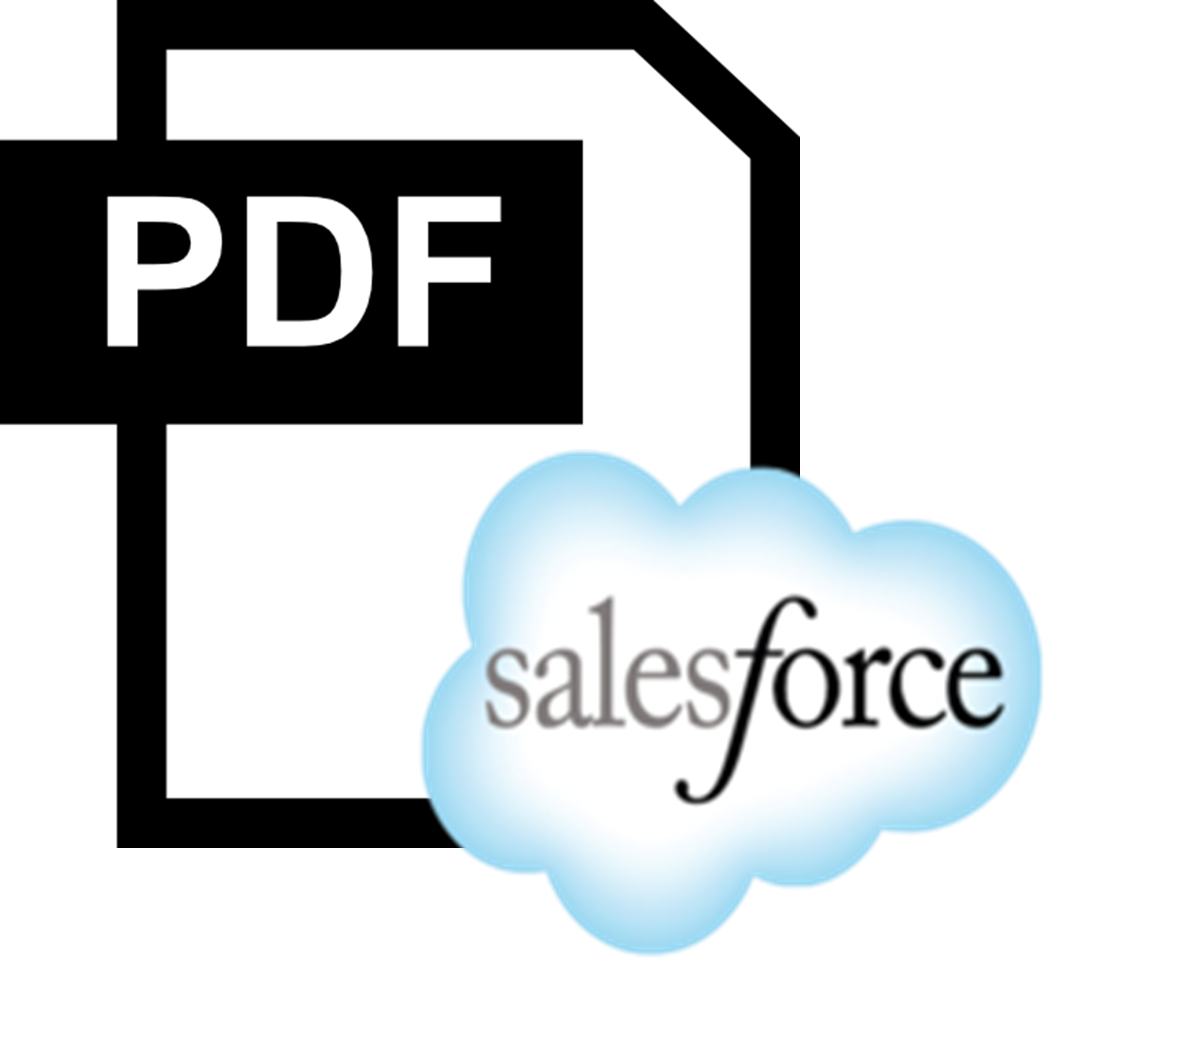 How helpful is a salesforce tutorial pdf onboarding and training pdf tutorials for salesforce may contain valuable information and are most helpful when used in conjunction with other salesforce employee training and baditri Choice Image